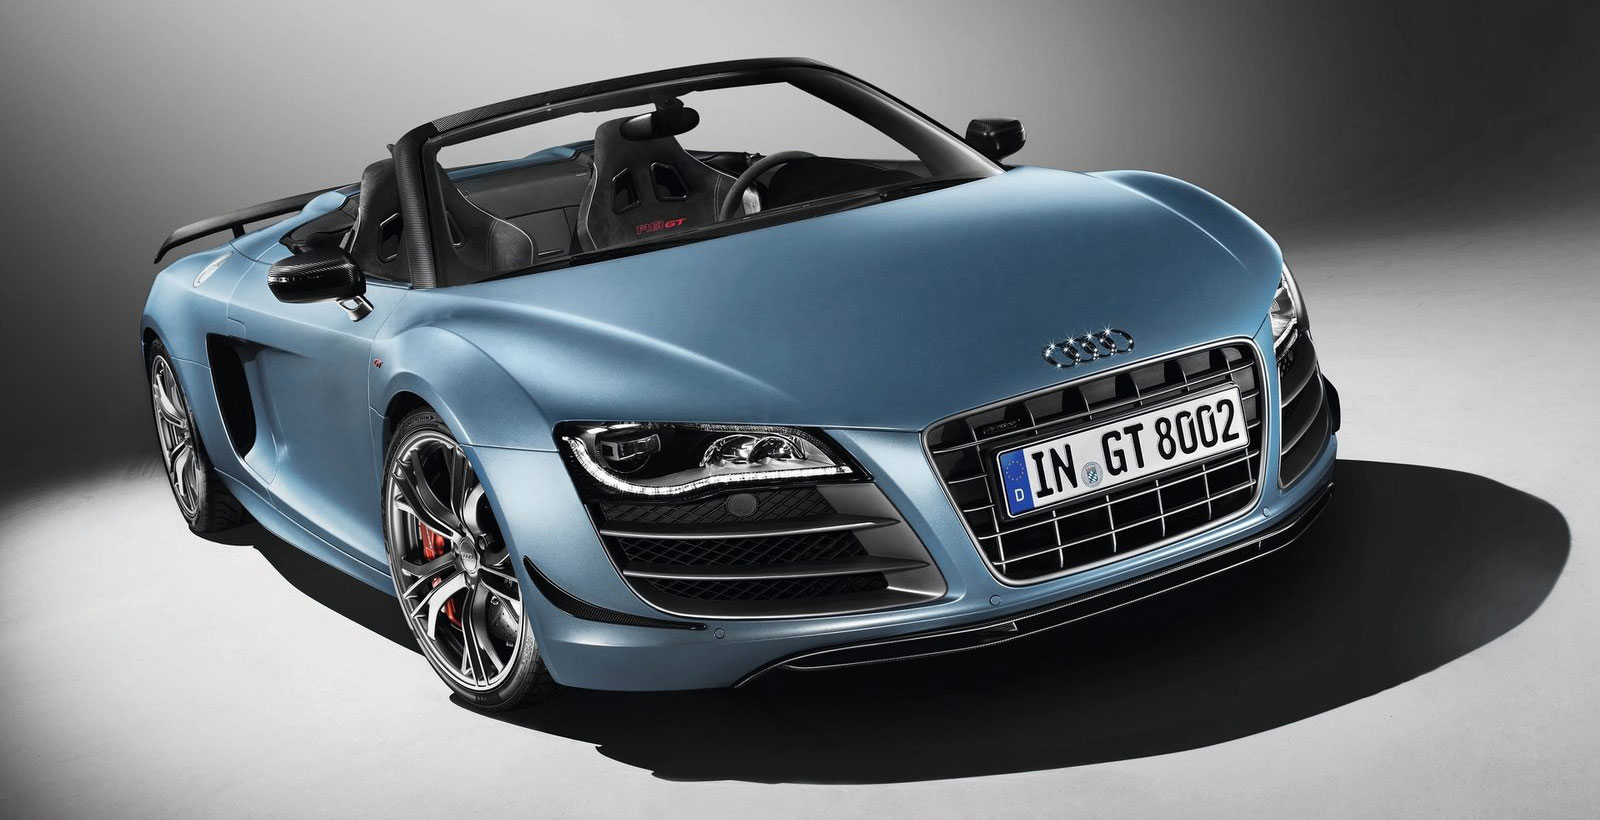 Another Day Another Topless Star Audi R GT Spyder - Day audi